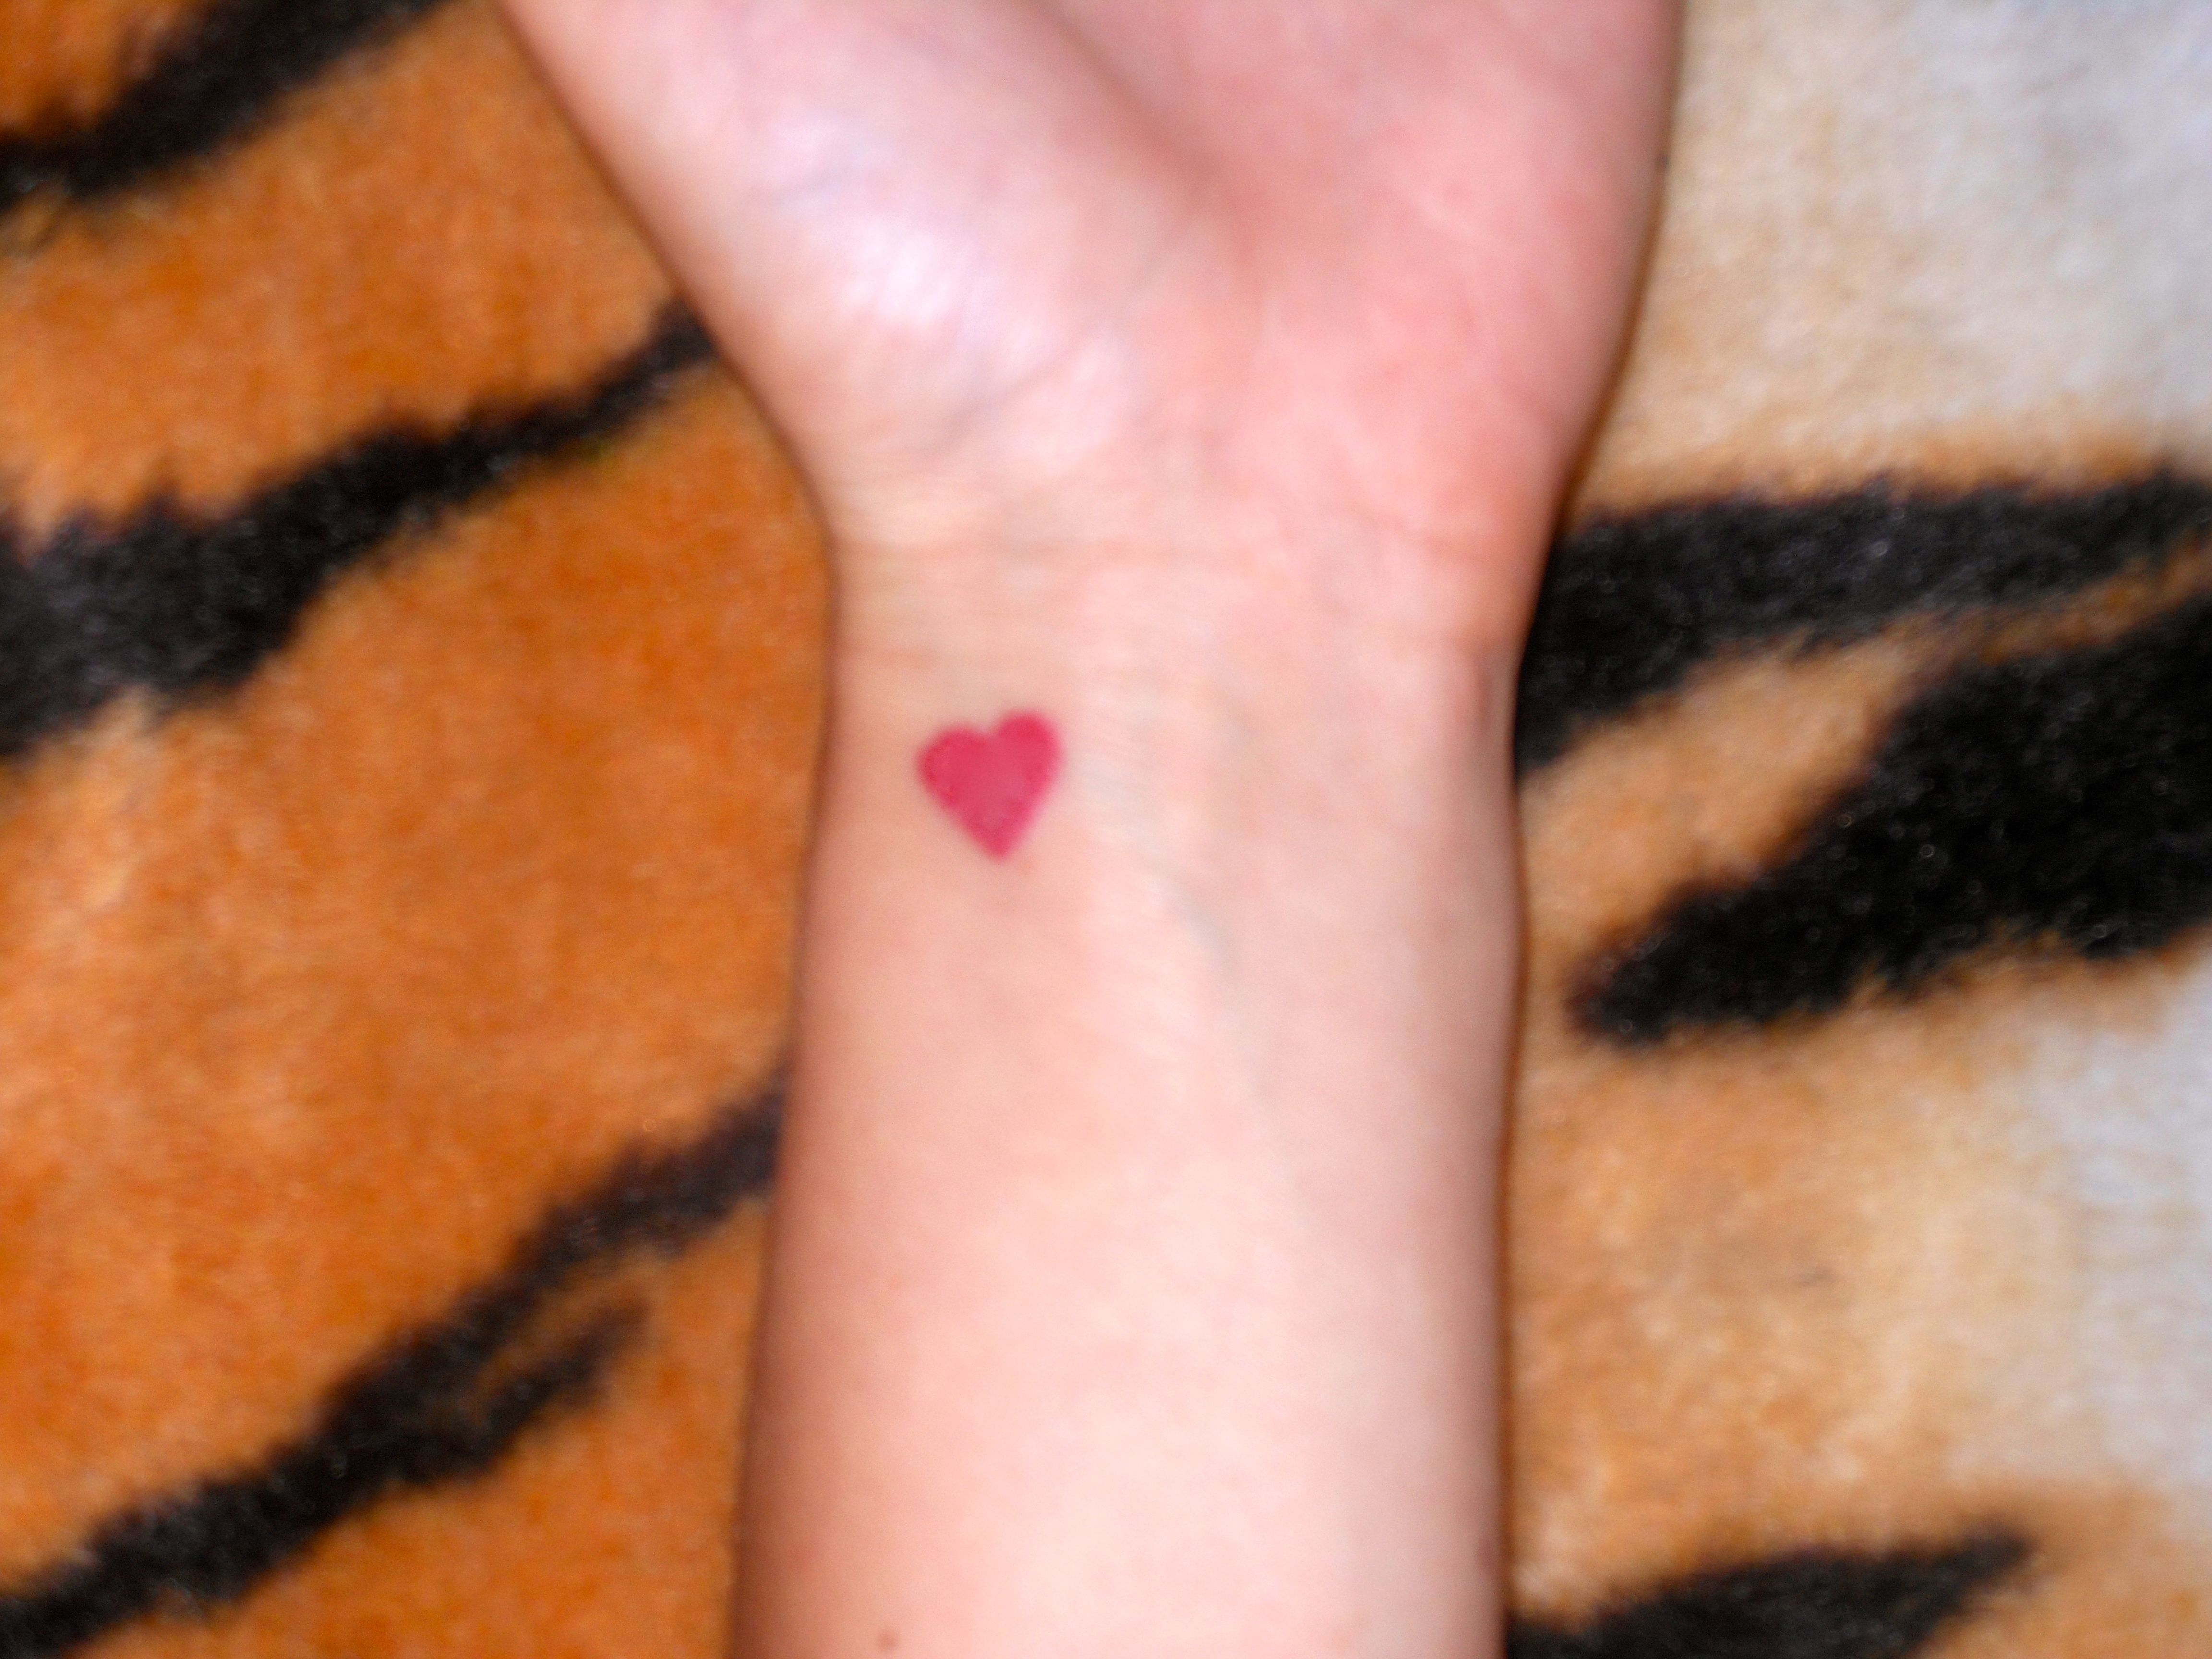 Heart wrist tattoos designs and ideas be well pinterest heart wrist tattoos designs and ideas biocorpaavc Image collections